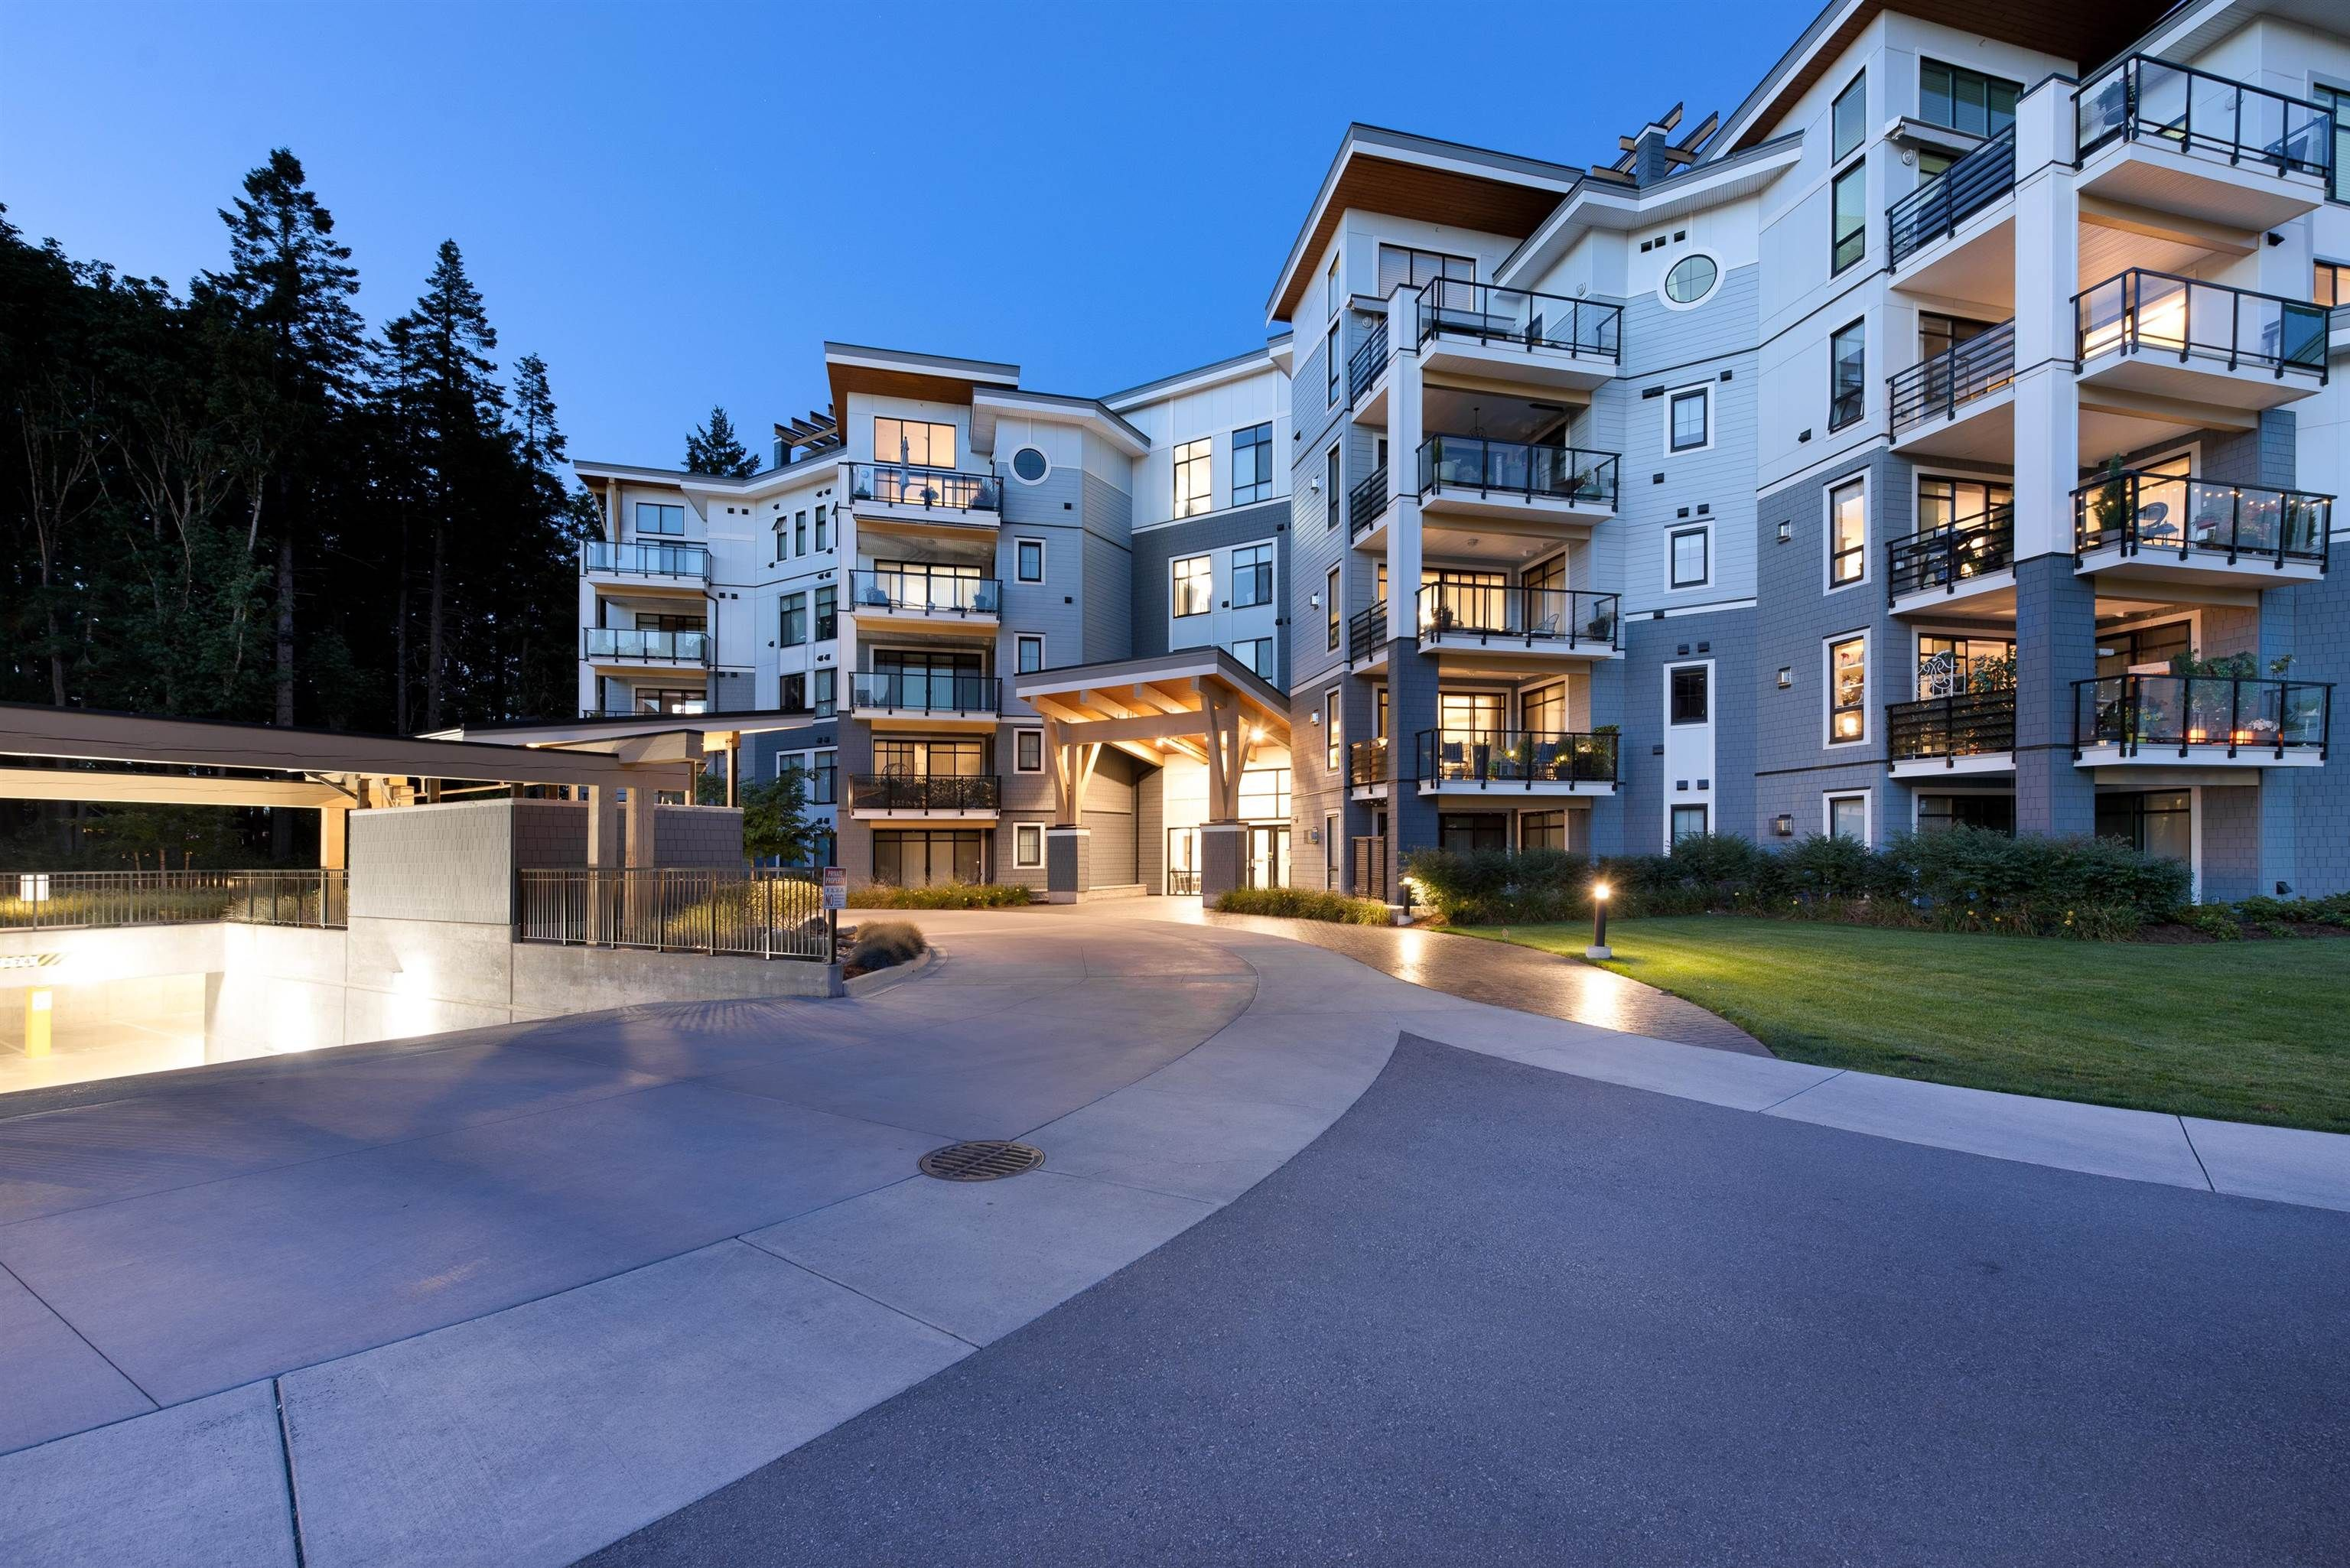 """Main Photo: 301 5380 TYEE Lane in Chilliwack: Vedder S Watson-Promontory Condo for sale in """"THE BOARDWALK AT RIVERS EDGE"""" (Sardis)  : MLS®# R2615754"""